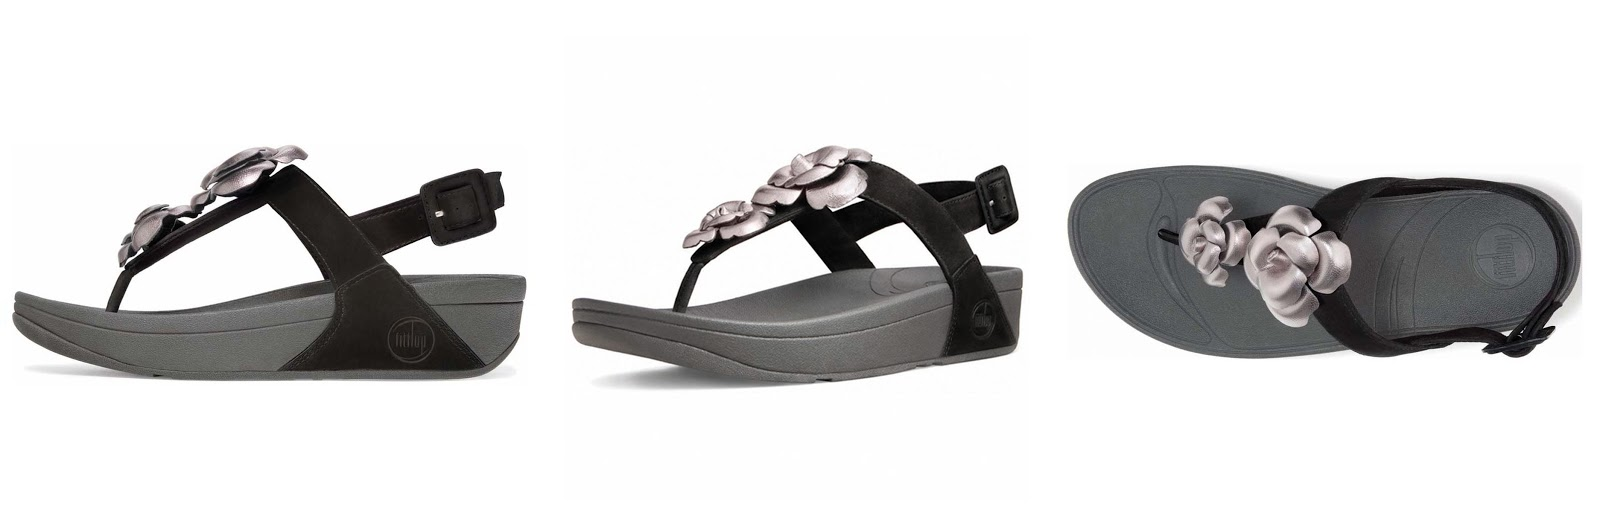 fitflop floretta pewter/black ????????